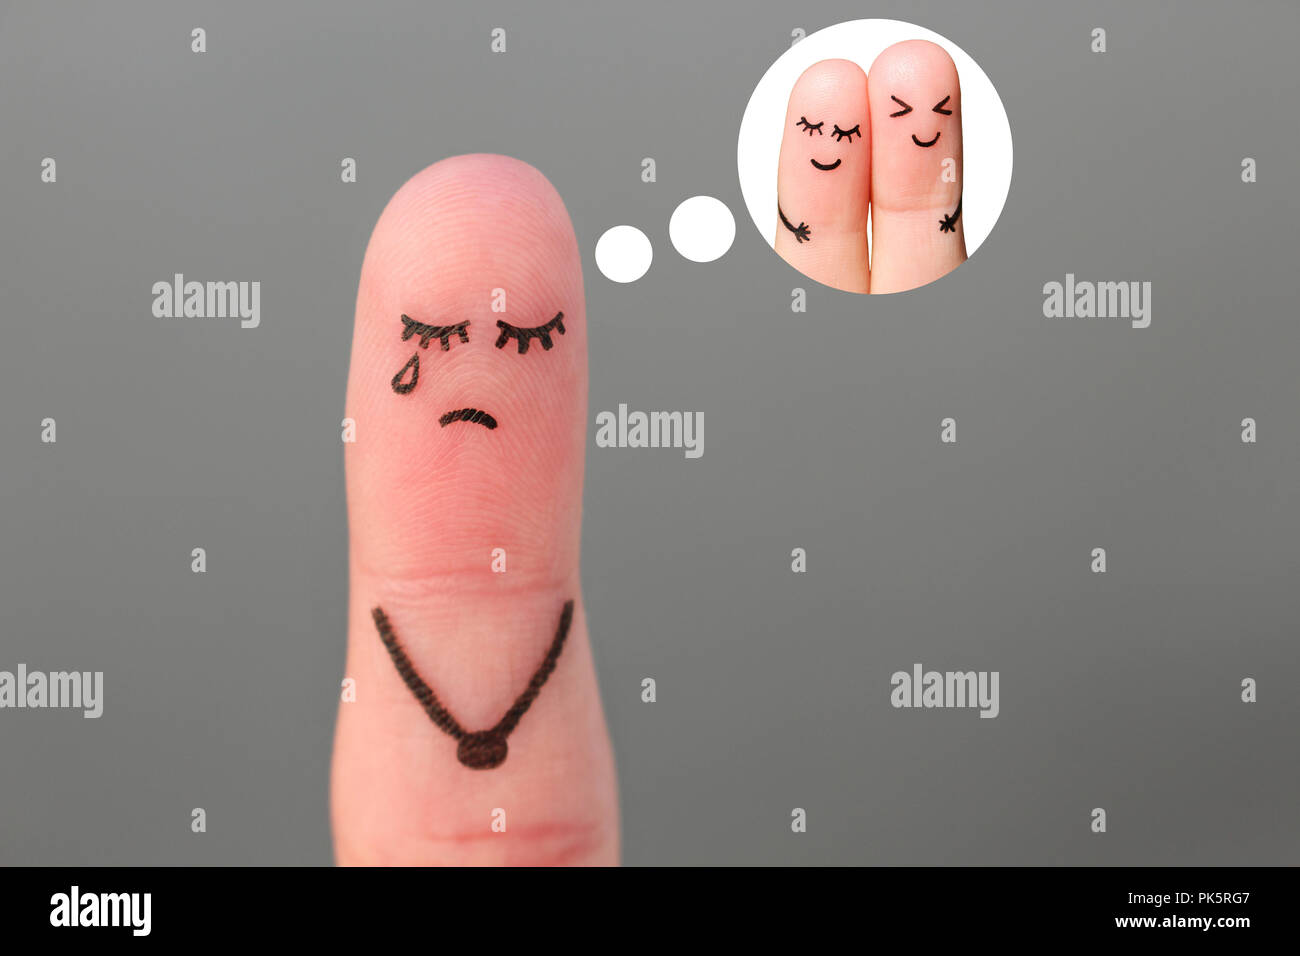 Finger art of lonely woman is crying. Concept of single girl remembers past relationship. - Stock Image